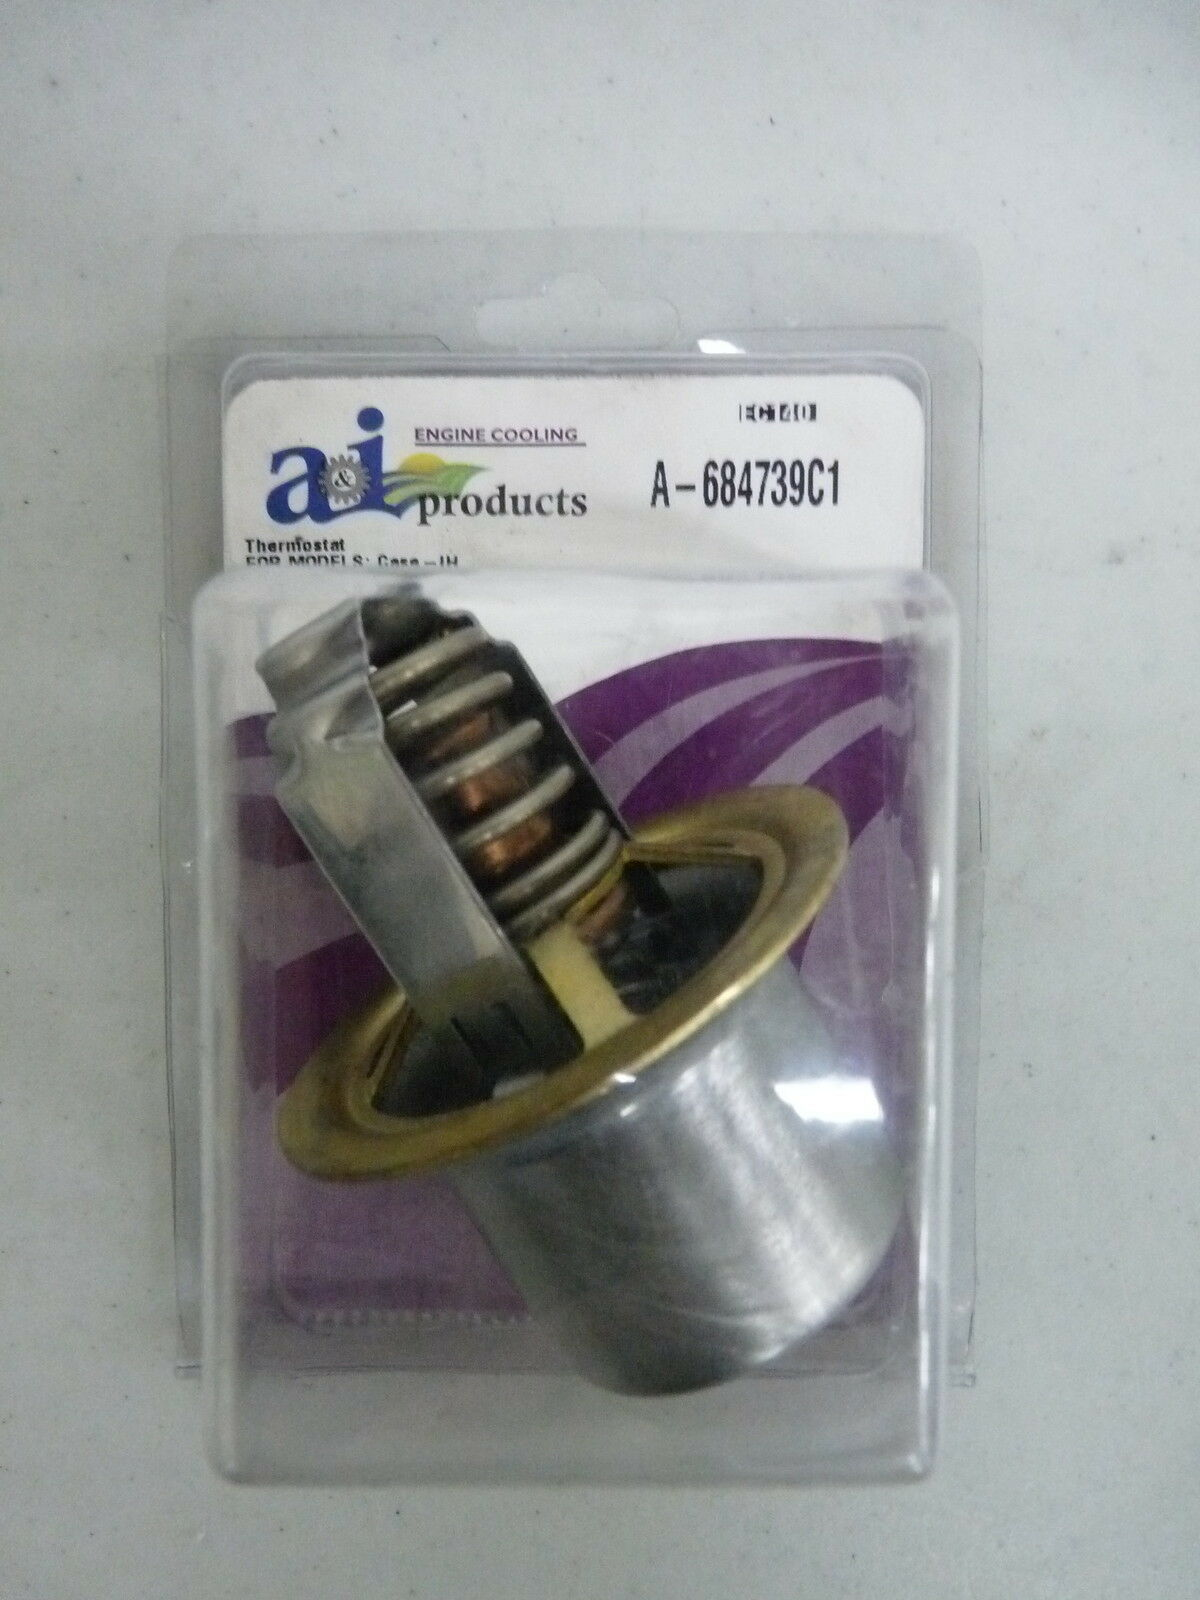 A I 684739c1 Thermostat Made To Fit Case Ih Tractor 190f For Sale Online Ebay